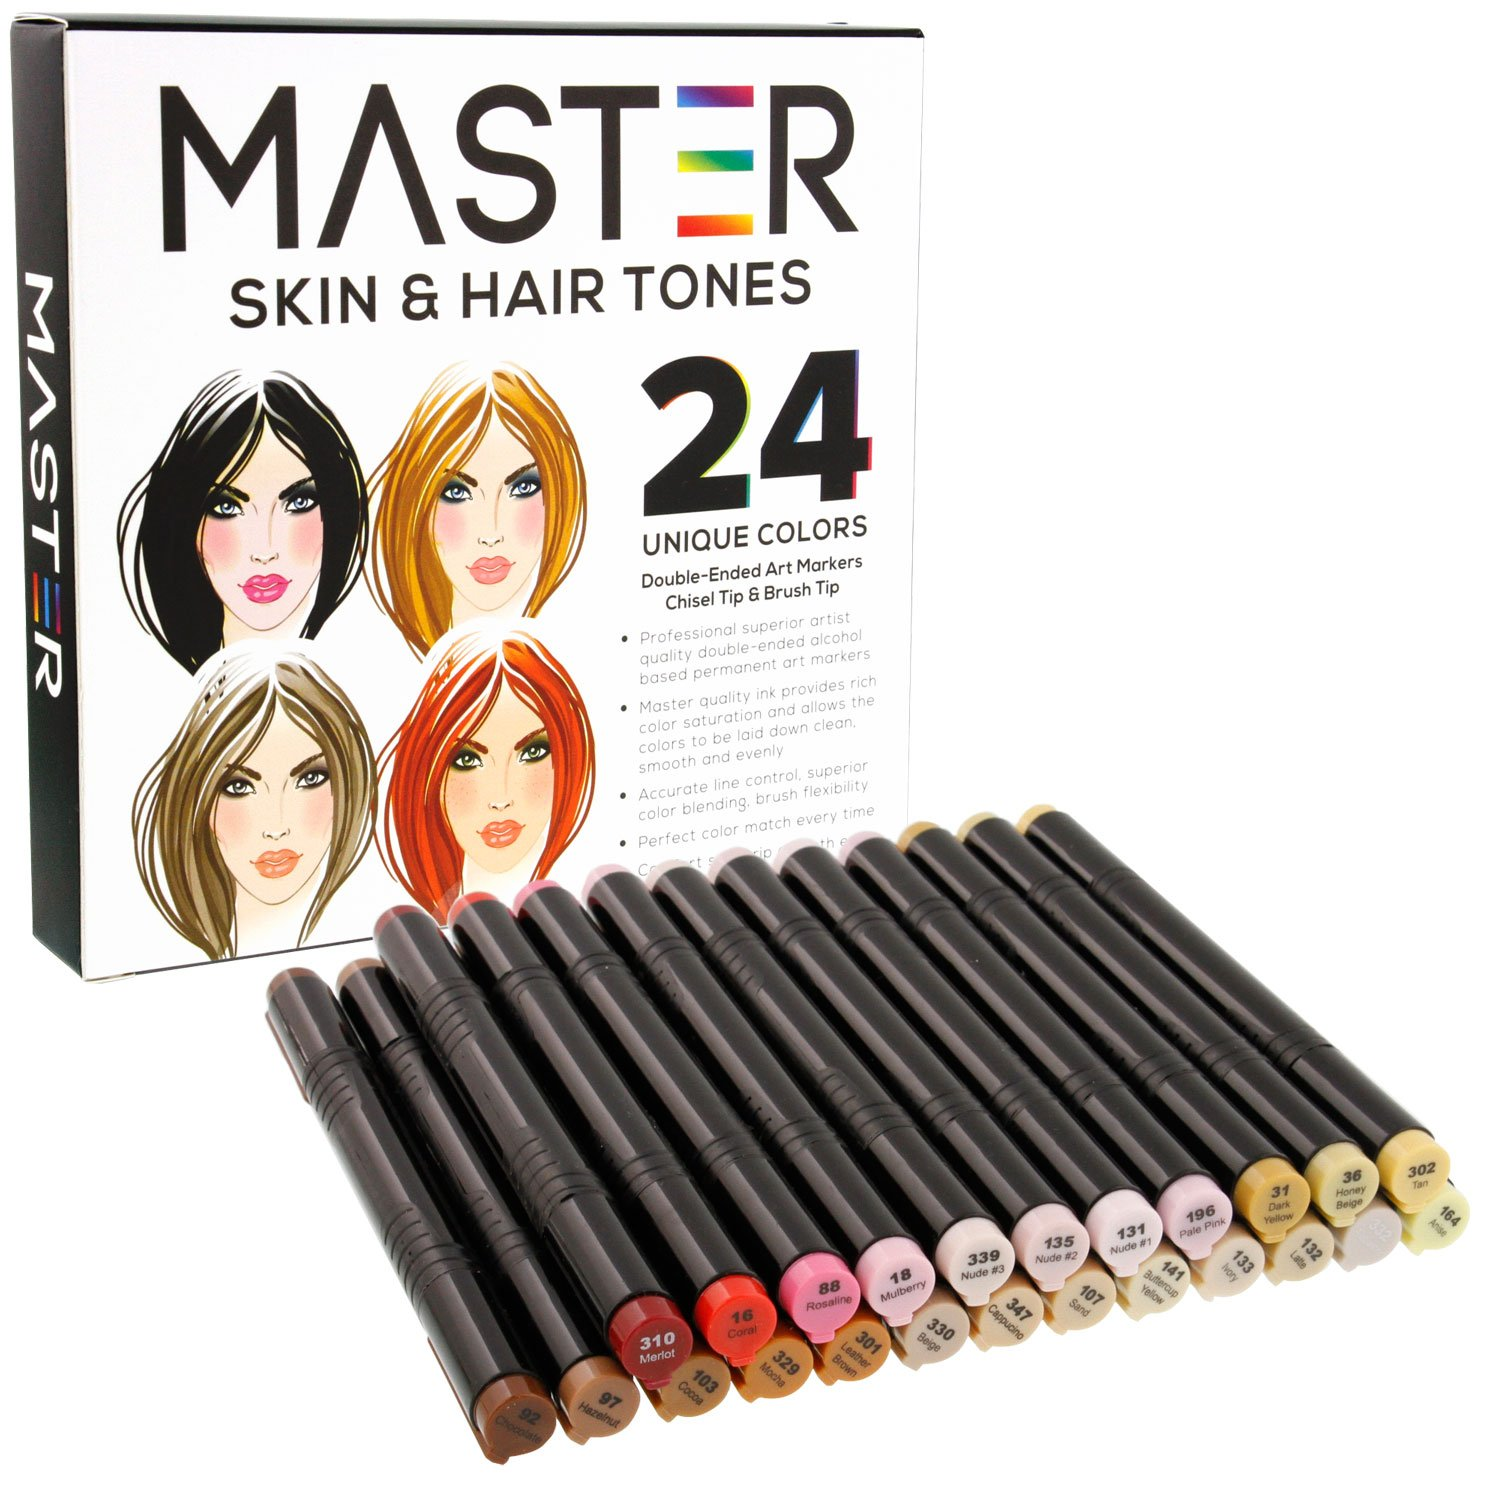 24 Color Master Markers Skin & Hair Tones Dual Tip Set - Double-Ended Art Markers with Chisel Point and Standard Brush Tip - Soft Grip Barrels - Flesh, Face, Manga, Portrait, Illustration, Sketch